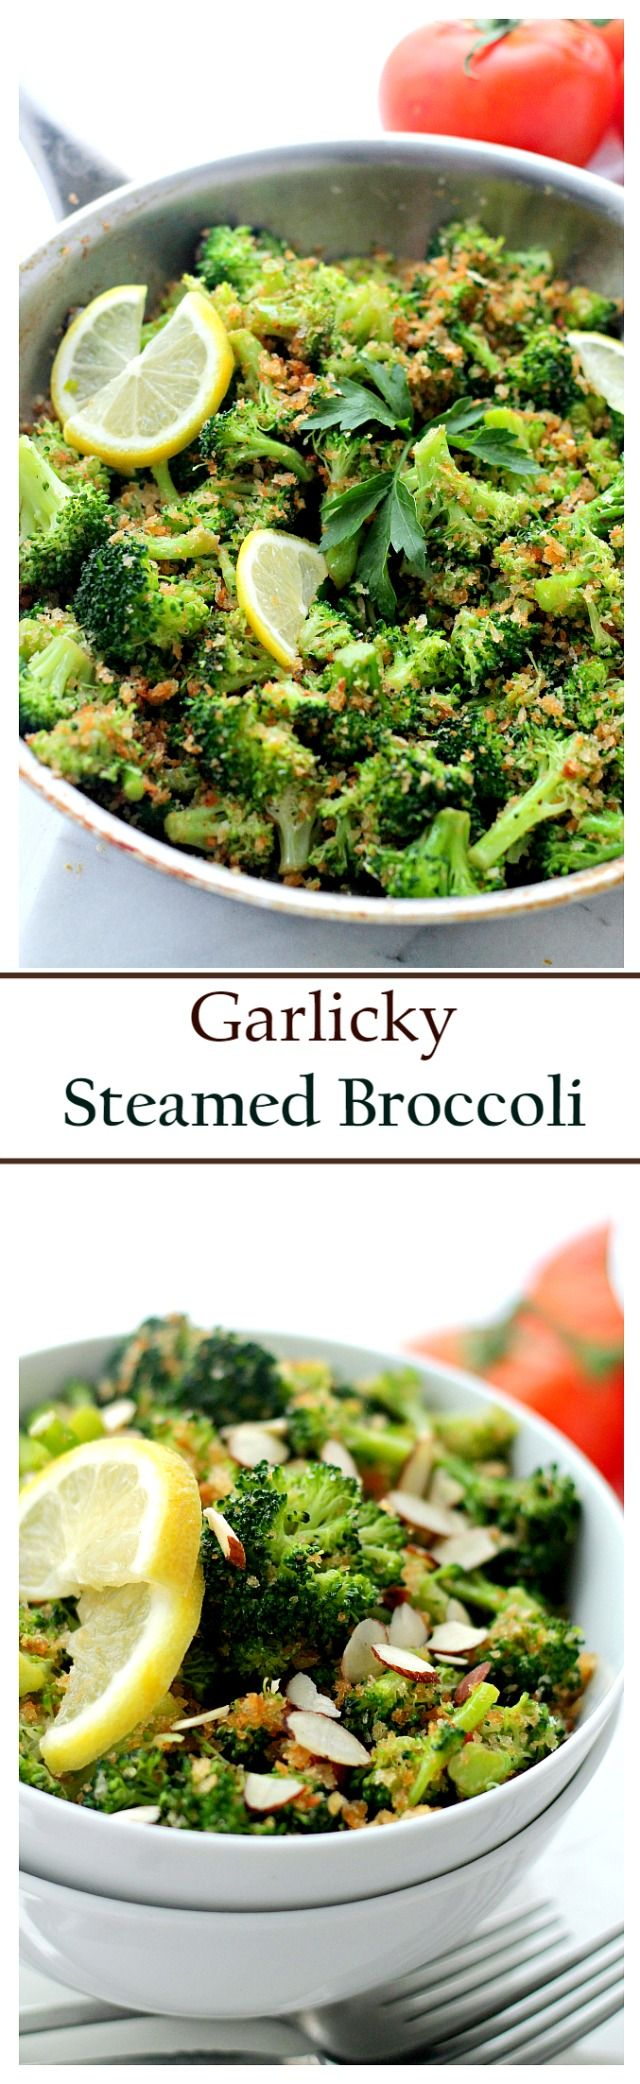 Garlicky Steamed Broccoli Www Diethood Com Make This Delicious And Healthy Side Dish Of Steamed Bro Broccoli Recipes Vegetable Dishes Vegetable Side Dishes